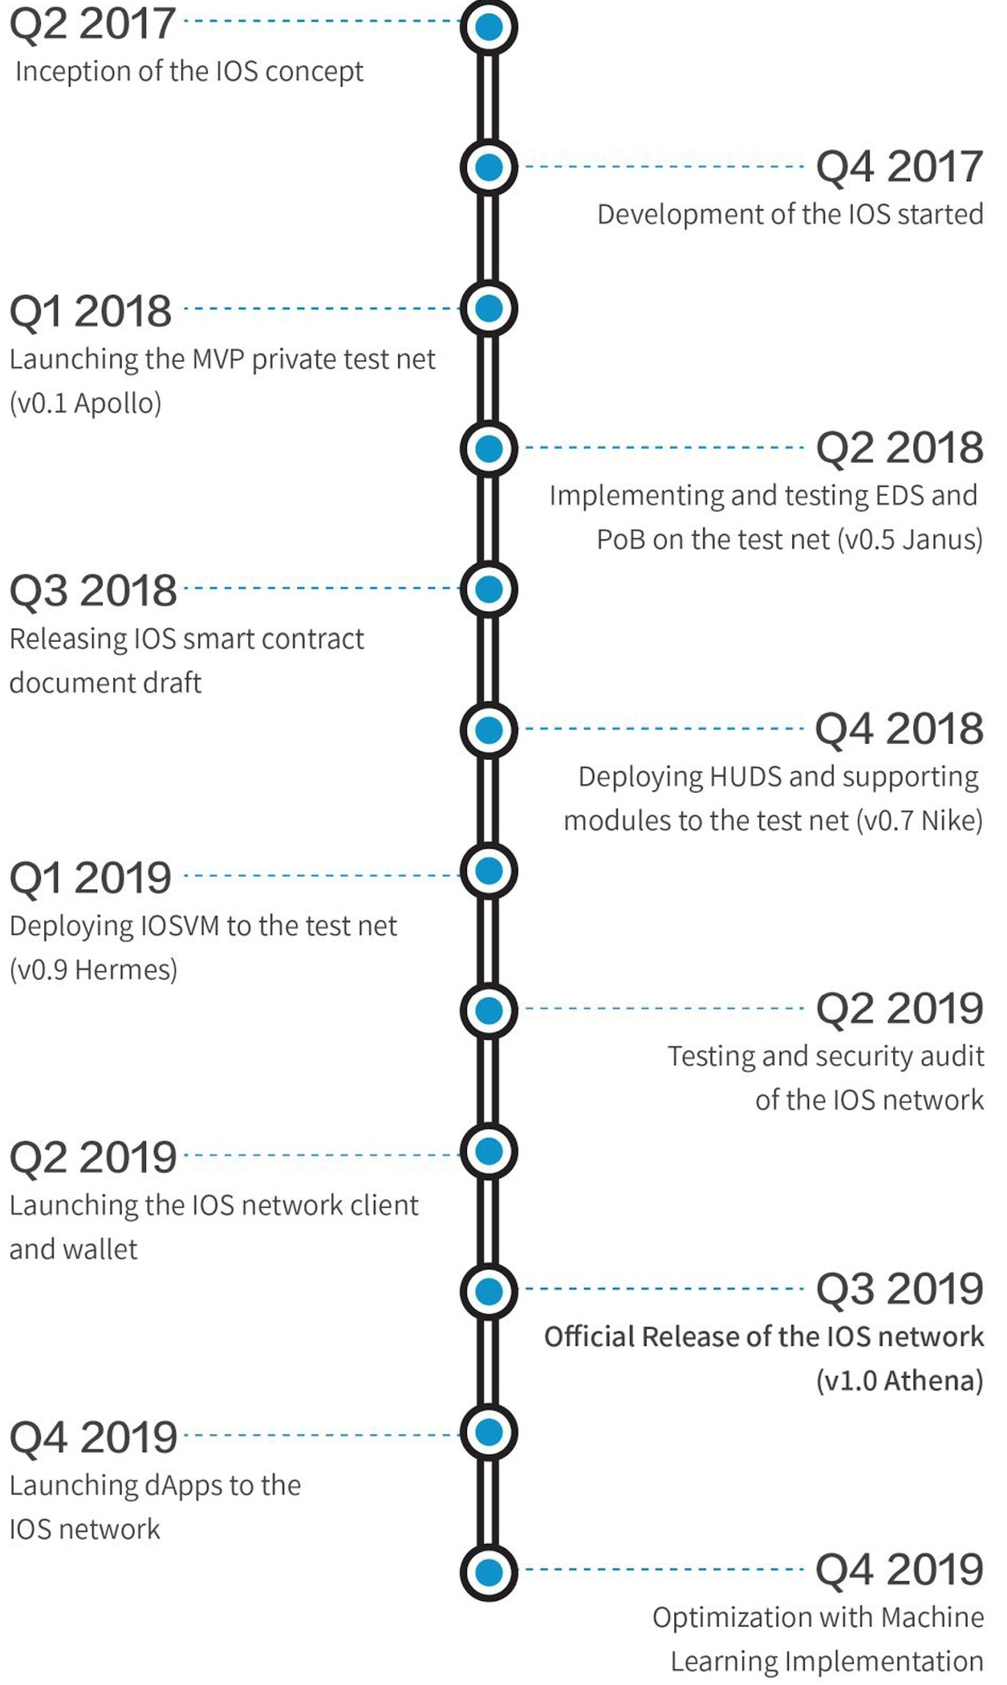 Roadmap-IOSToken-IOST-IOST-cryptocurrency-token-crypto-allesovercrypto-binance-kopen-buy-uitleg.png